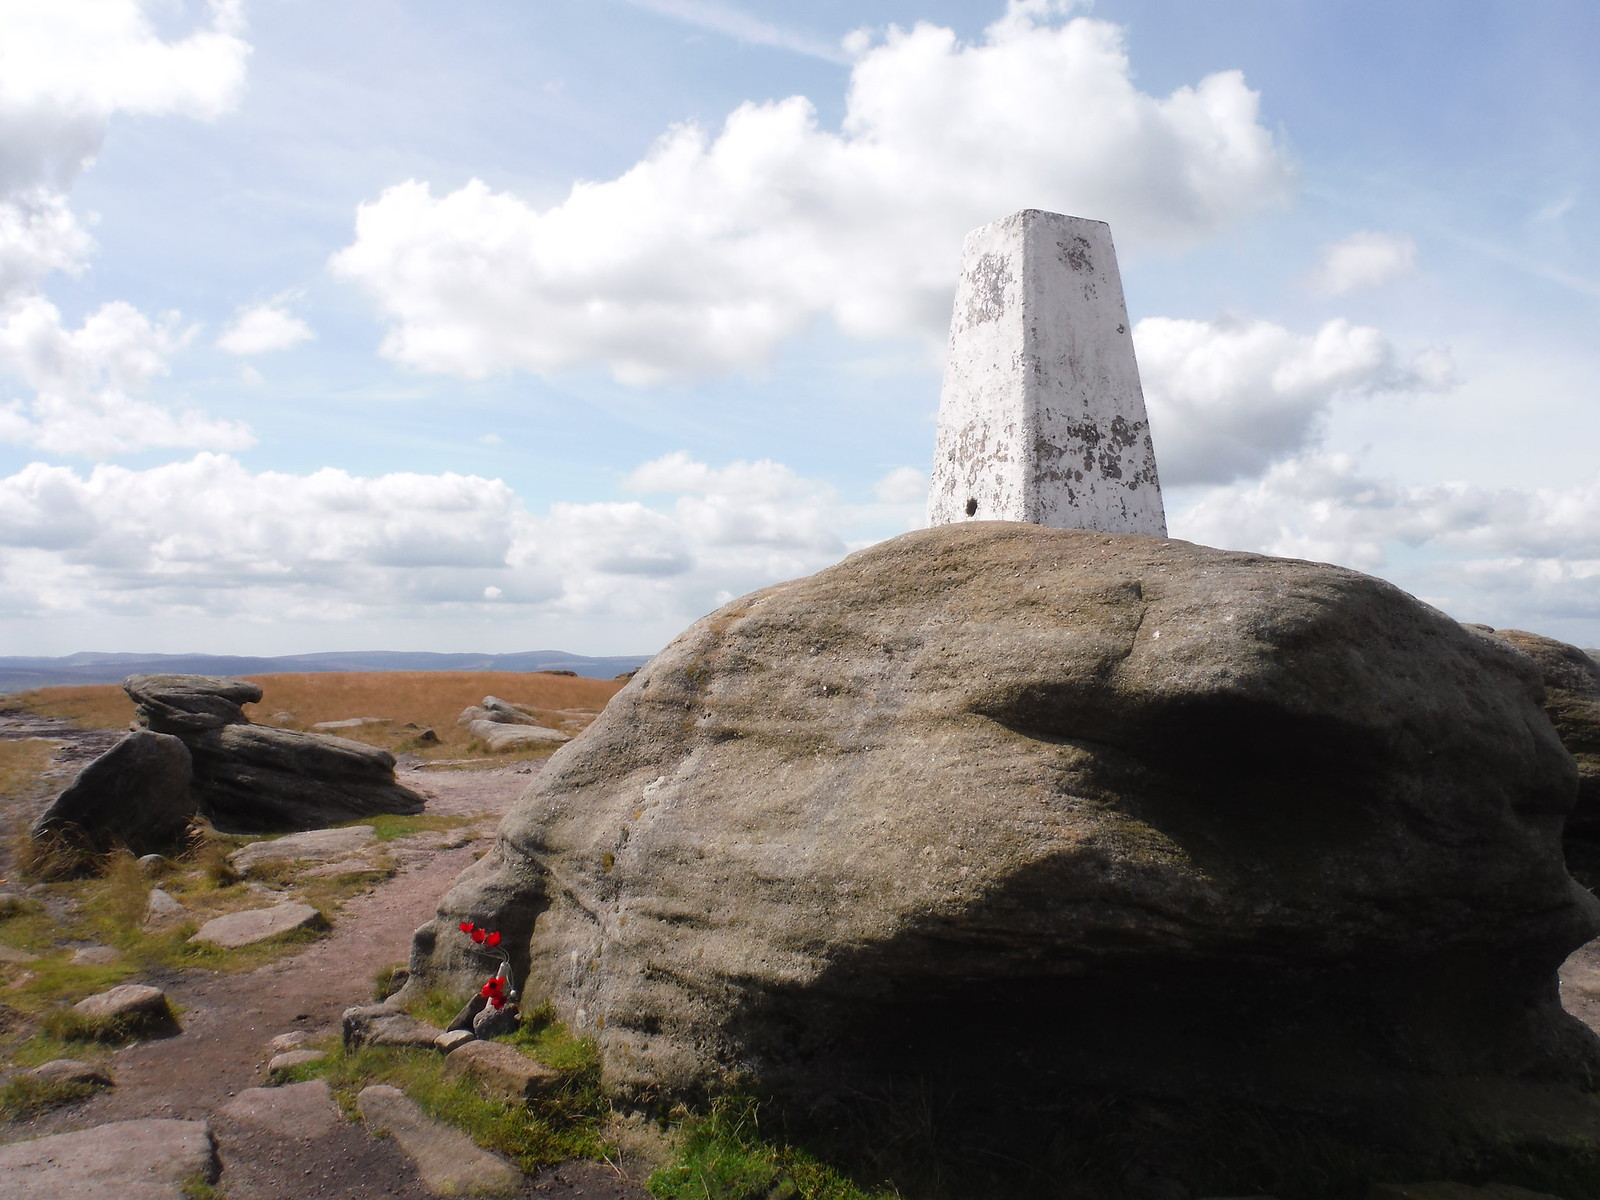 Trig Point at Kinder Low SWC Walk 303 - Edale Circular (via Kinder Scout and Mam Tor) [Kinder Downfall Option]